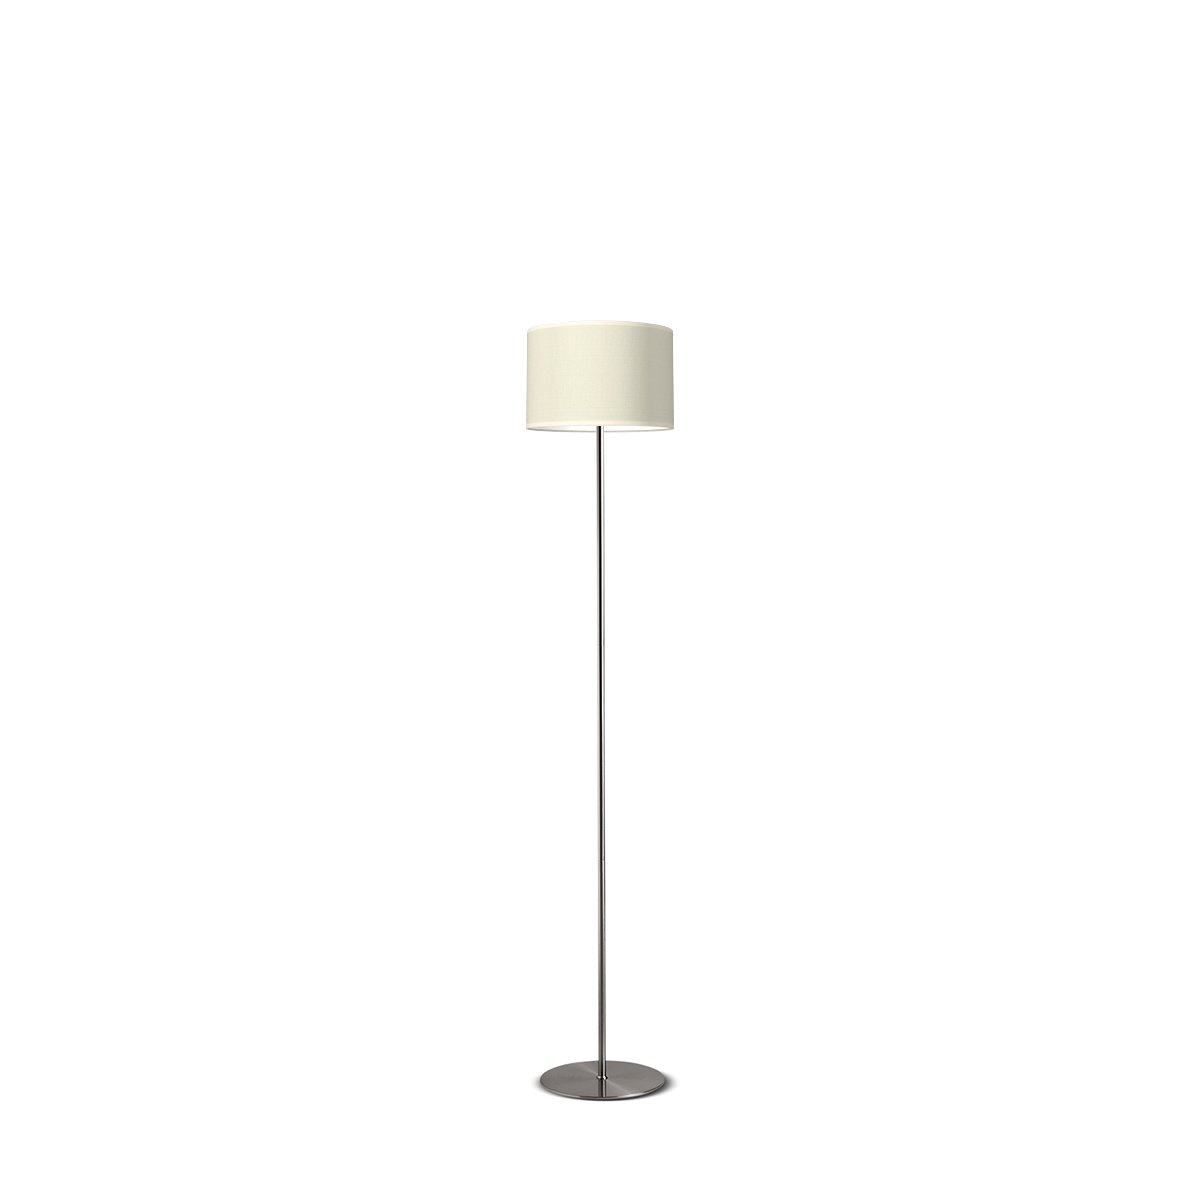 HOME SWEET HOME vloerlamp lift bling Ø 30 cm - Warm white